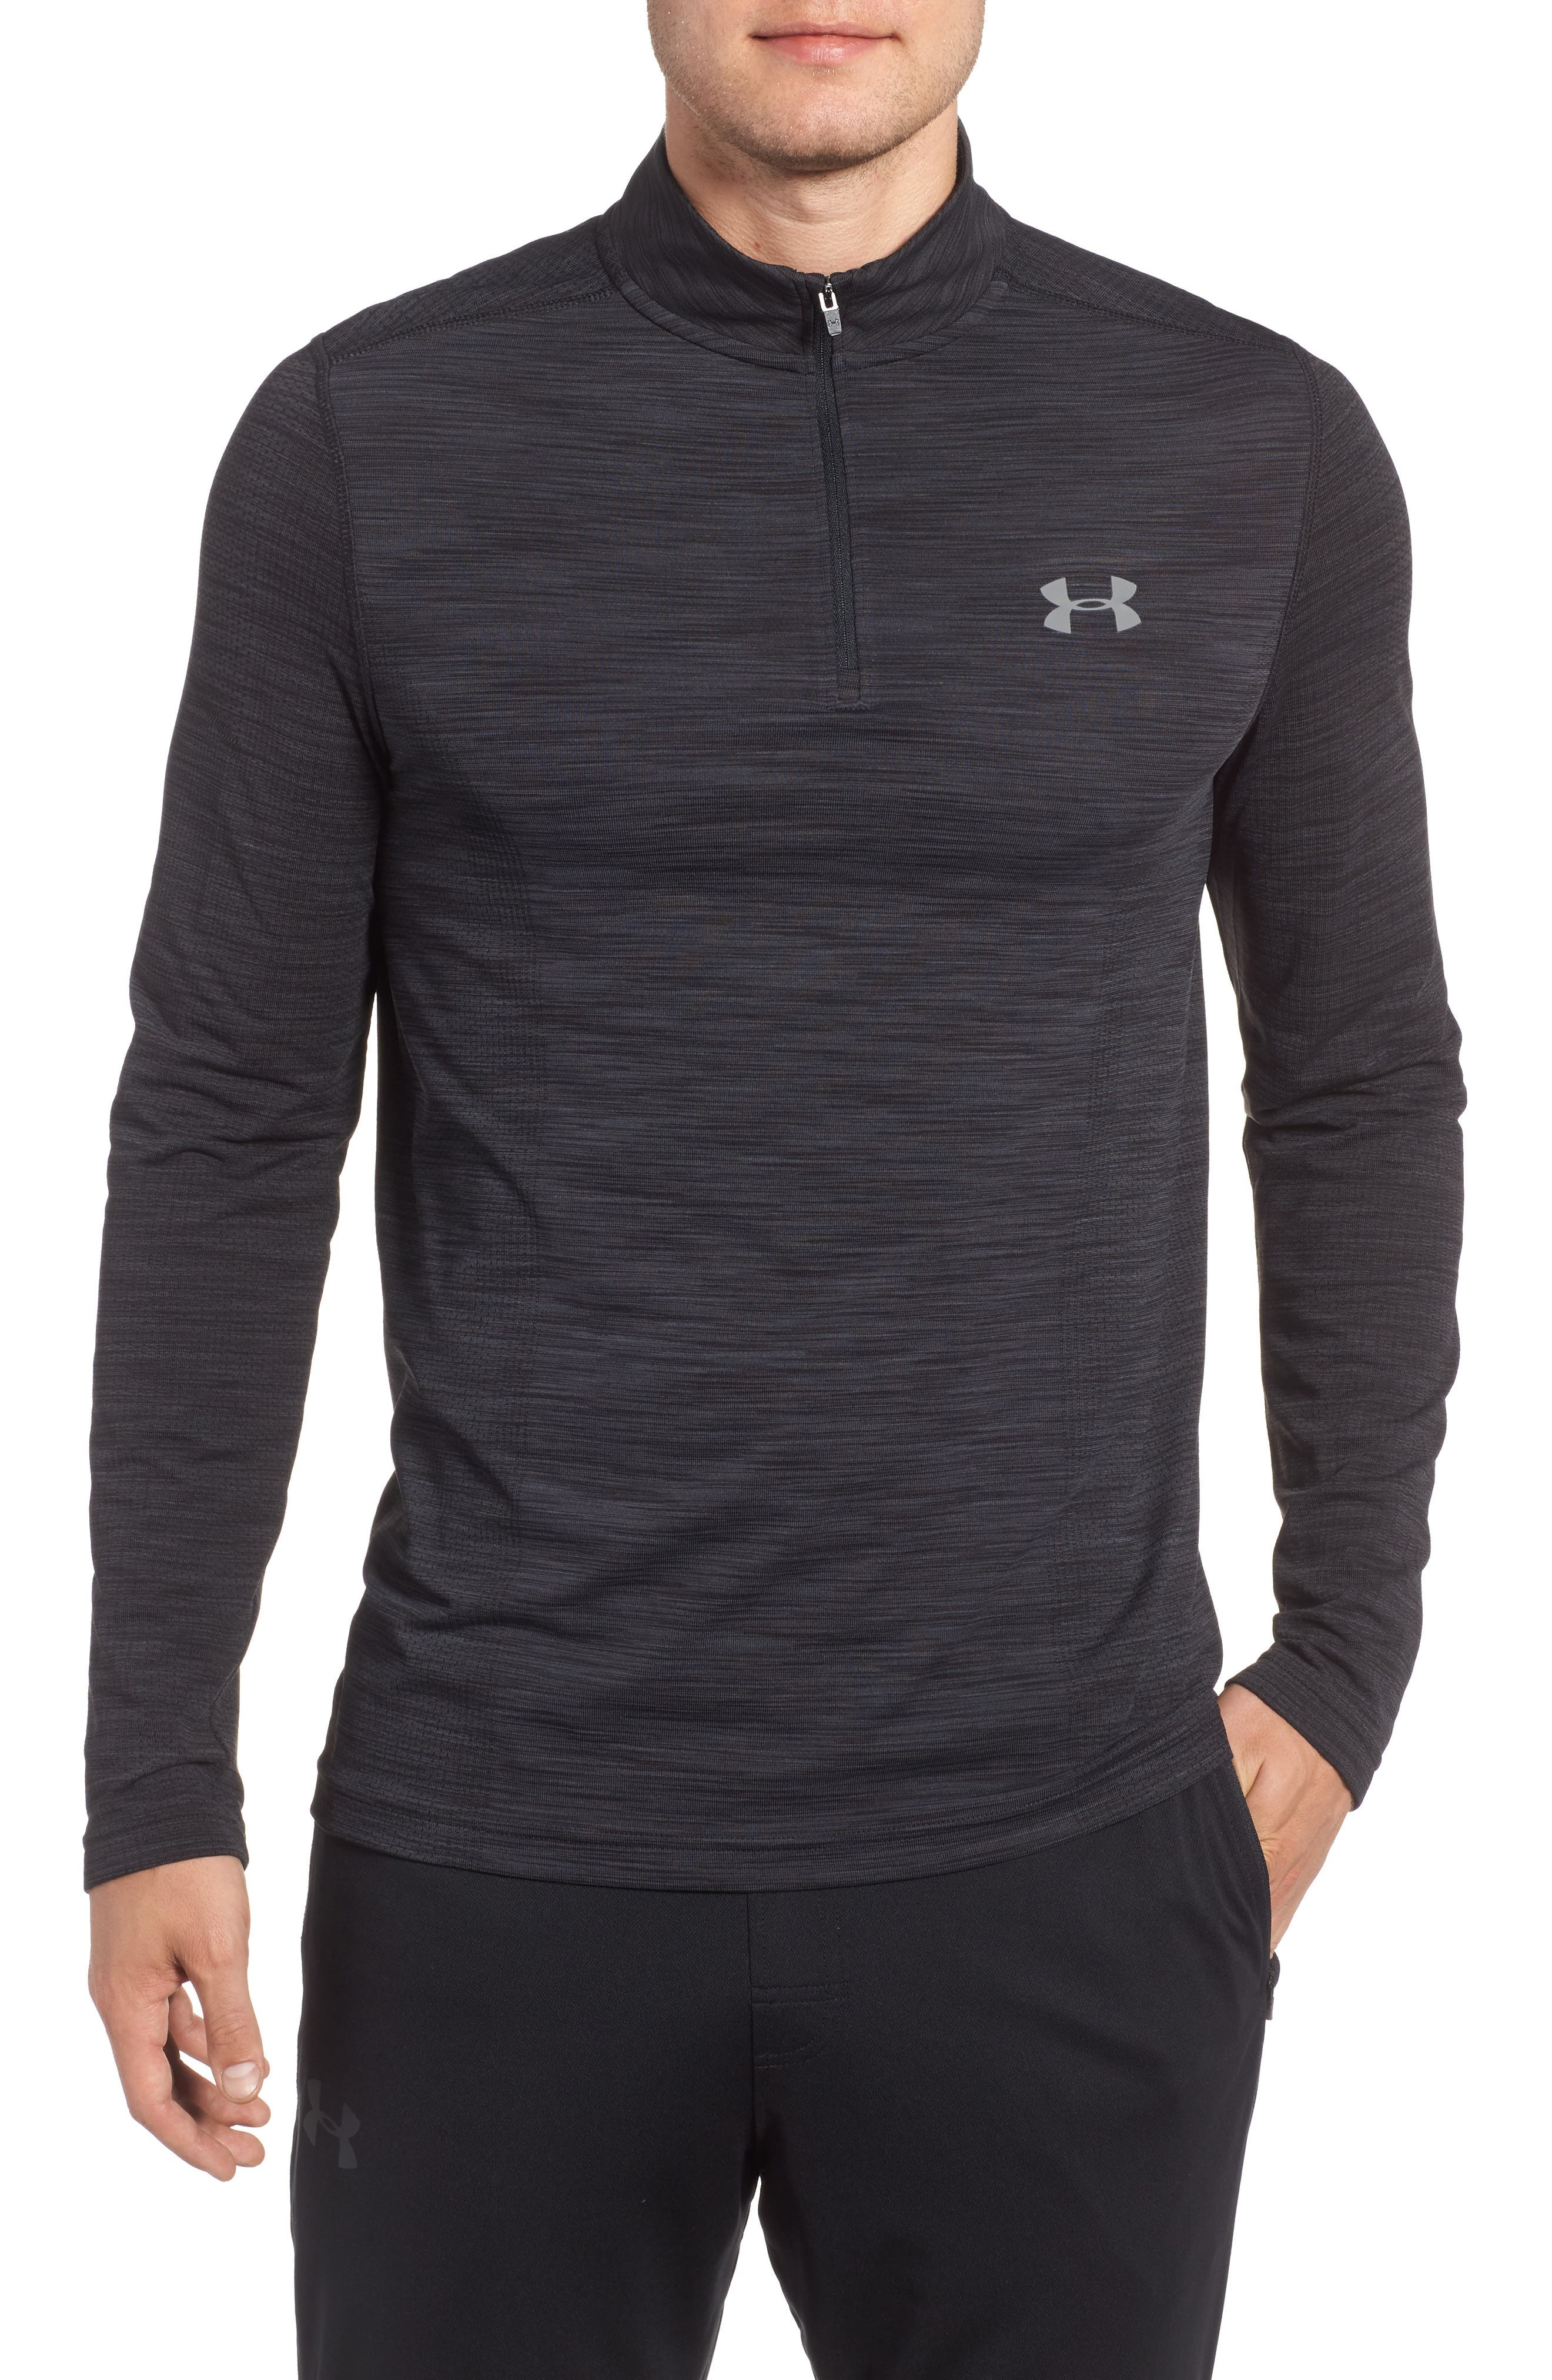 Under Armour Threadborne Seamless Quarter Zip Pullover